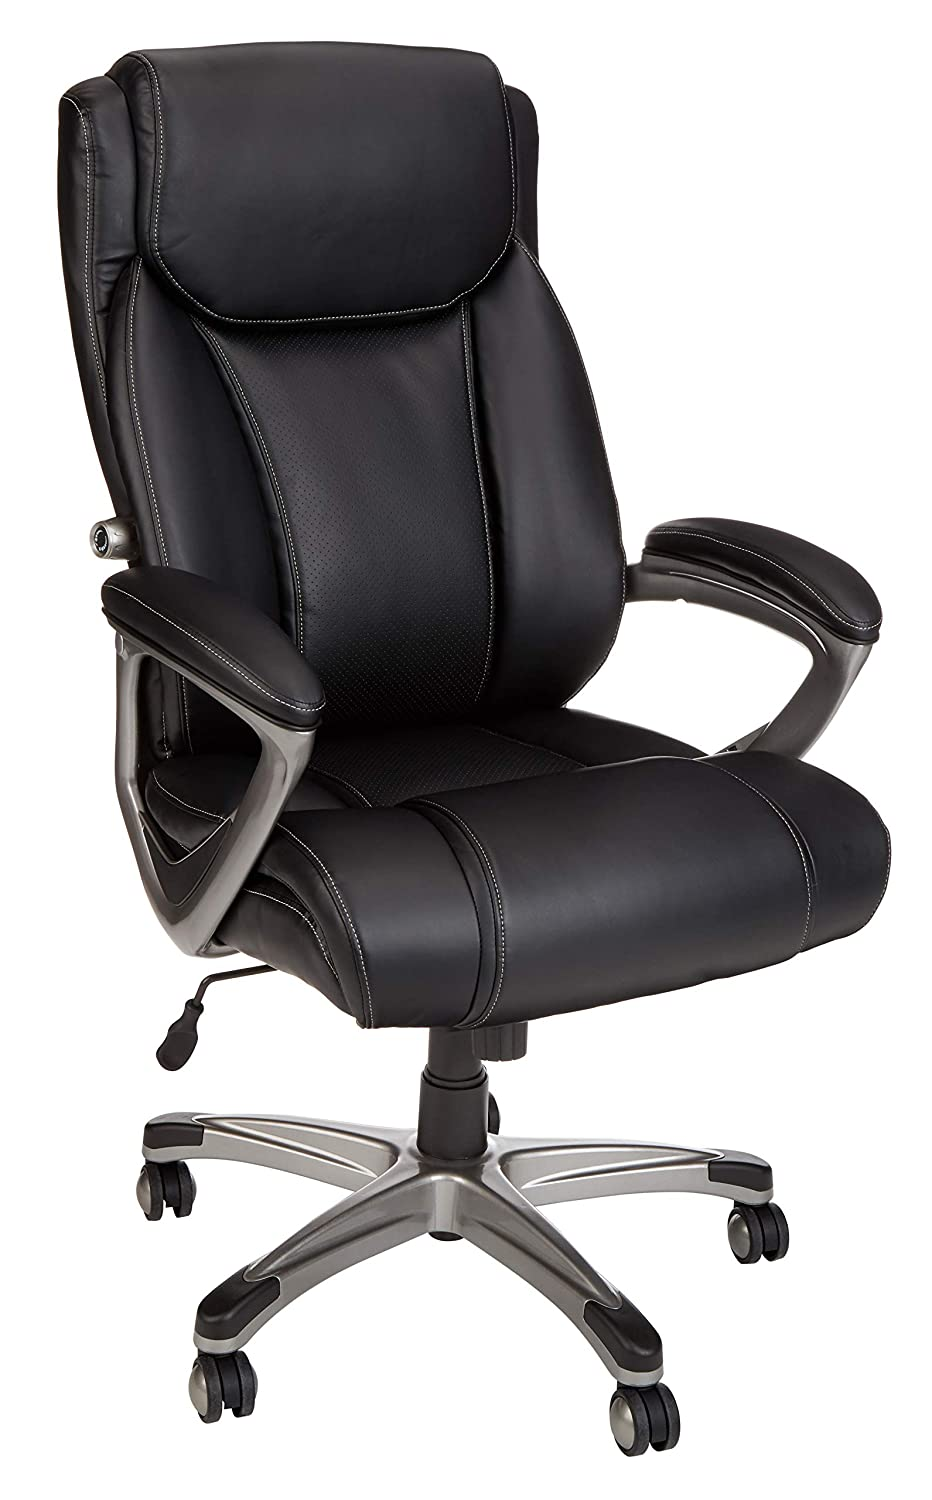 AmazonBasics Big & Tall Executive Chair - Adjustable with Armrest, 350-Pound Capacity - Black with Pewter Finish